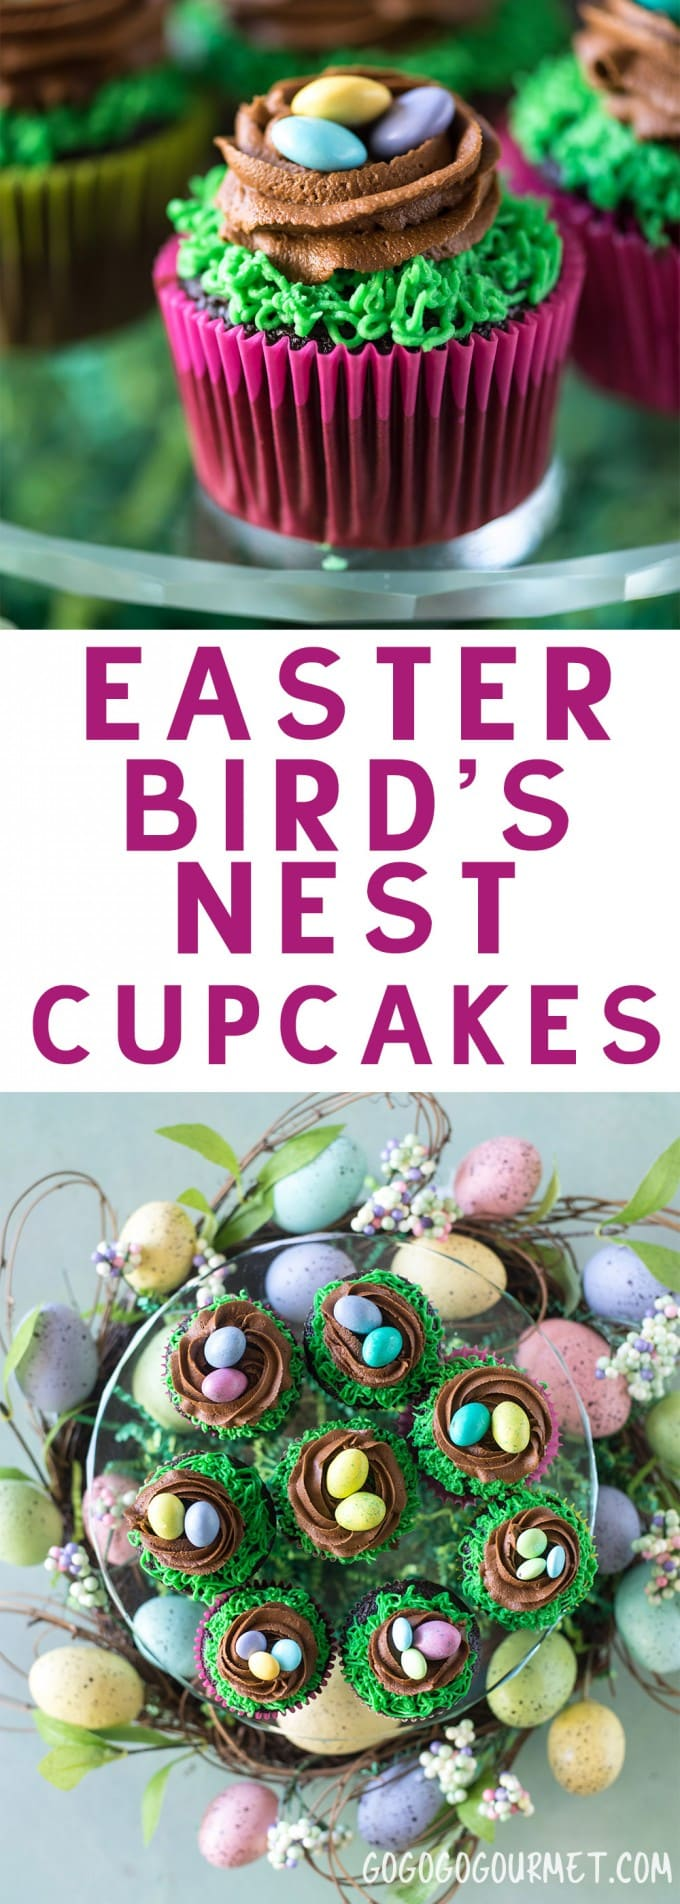 These Easter Birds Nest Cupcakes are an adorable and easy dessert to make for your Easter egg hunts! Two quick decorating maneuvers and some Easter candy are all that it takes!